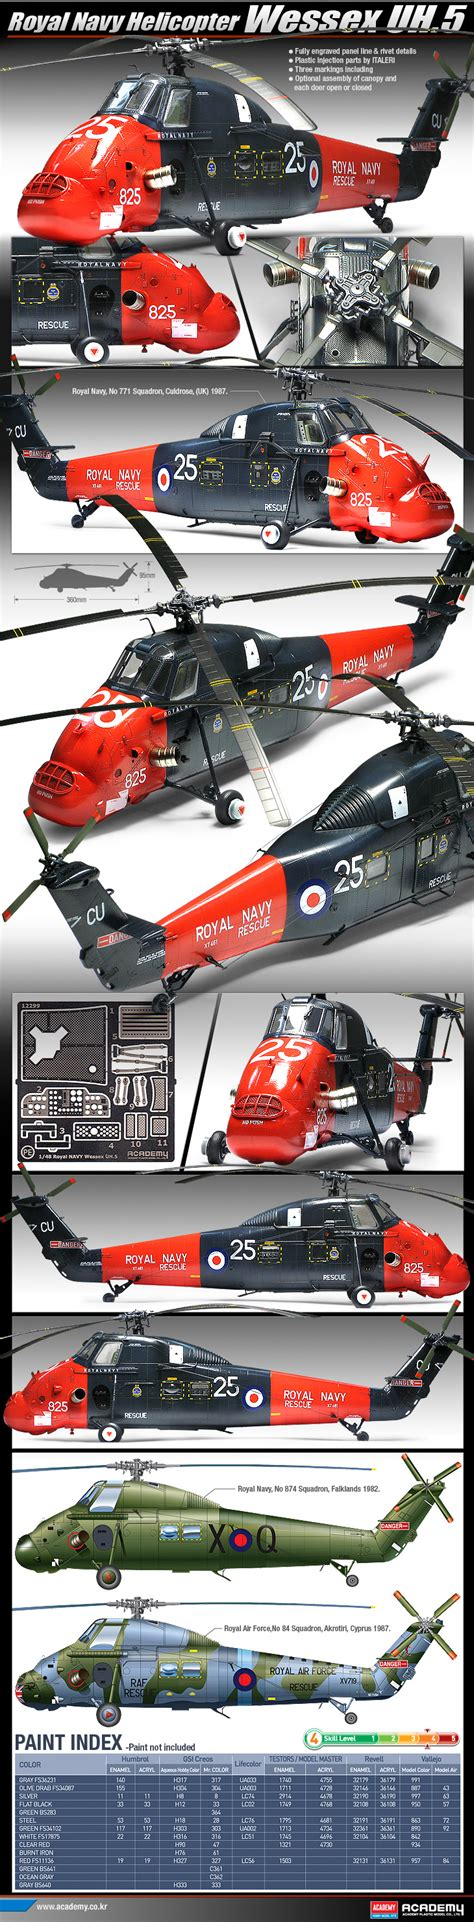 academy 1 48 wessex uh 5 12299 plastic model kit from emodels model hobby store based in the uk